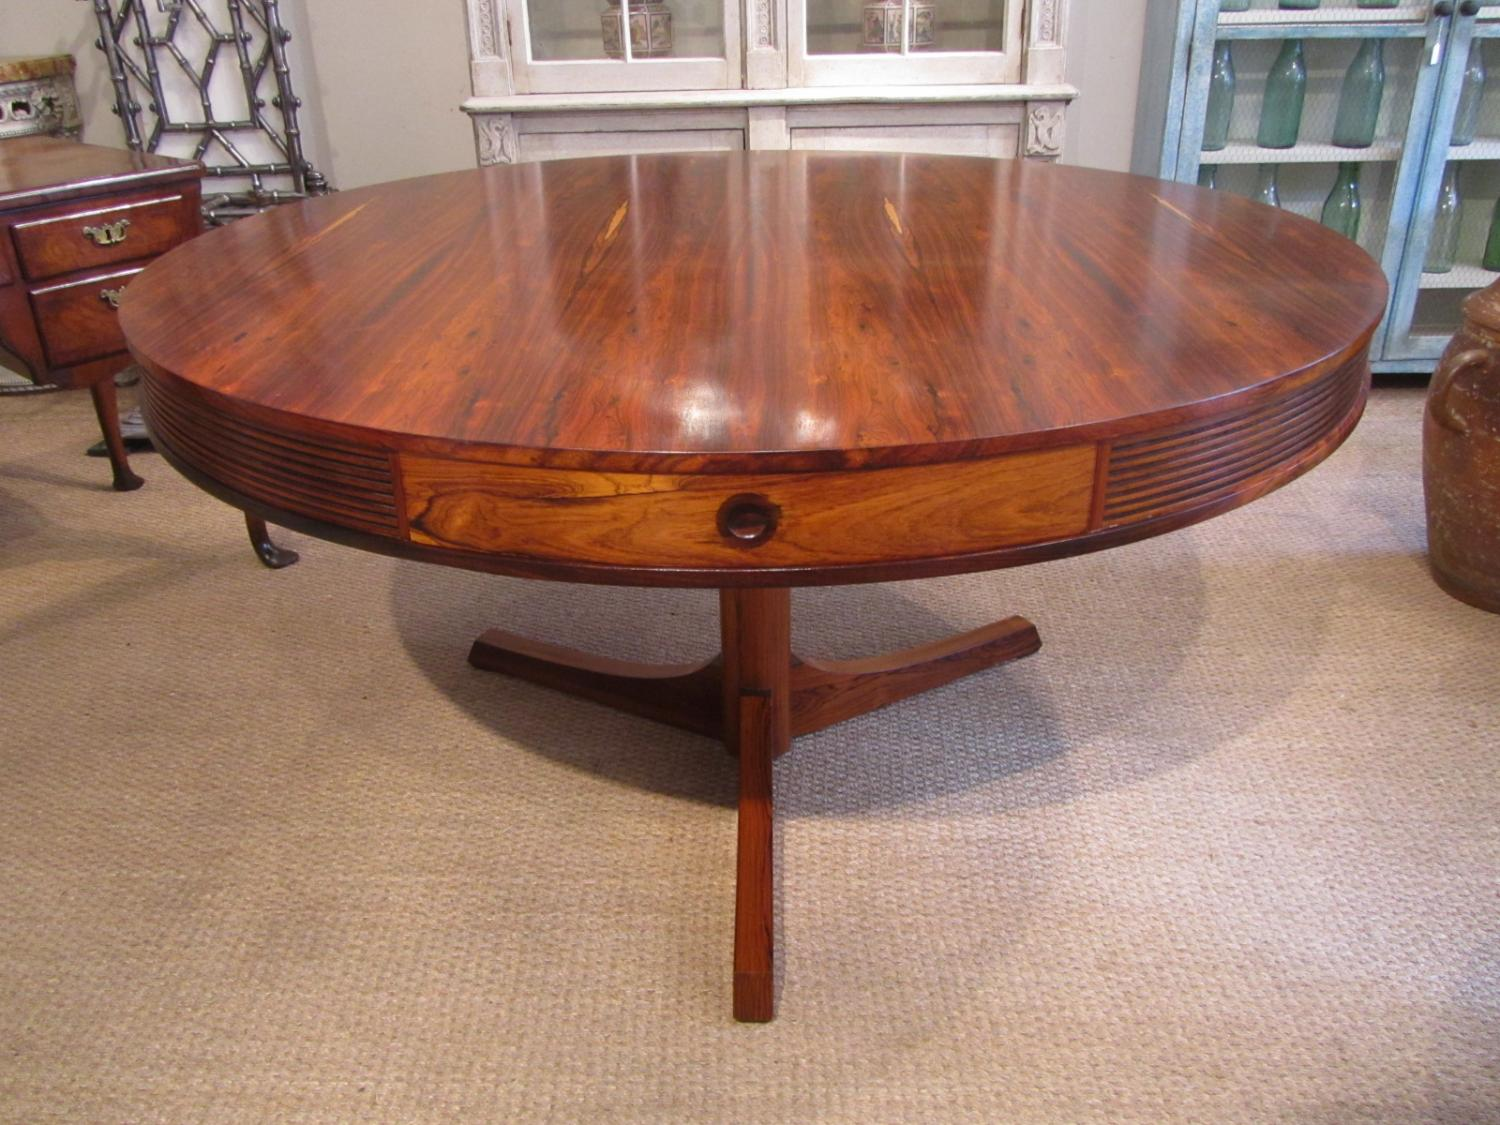 A rosewood drum dining table